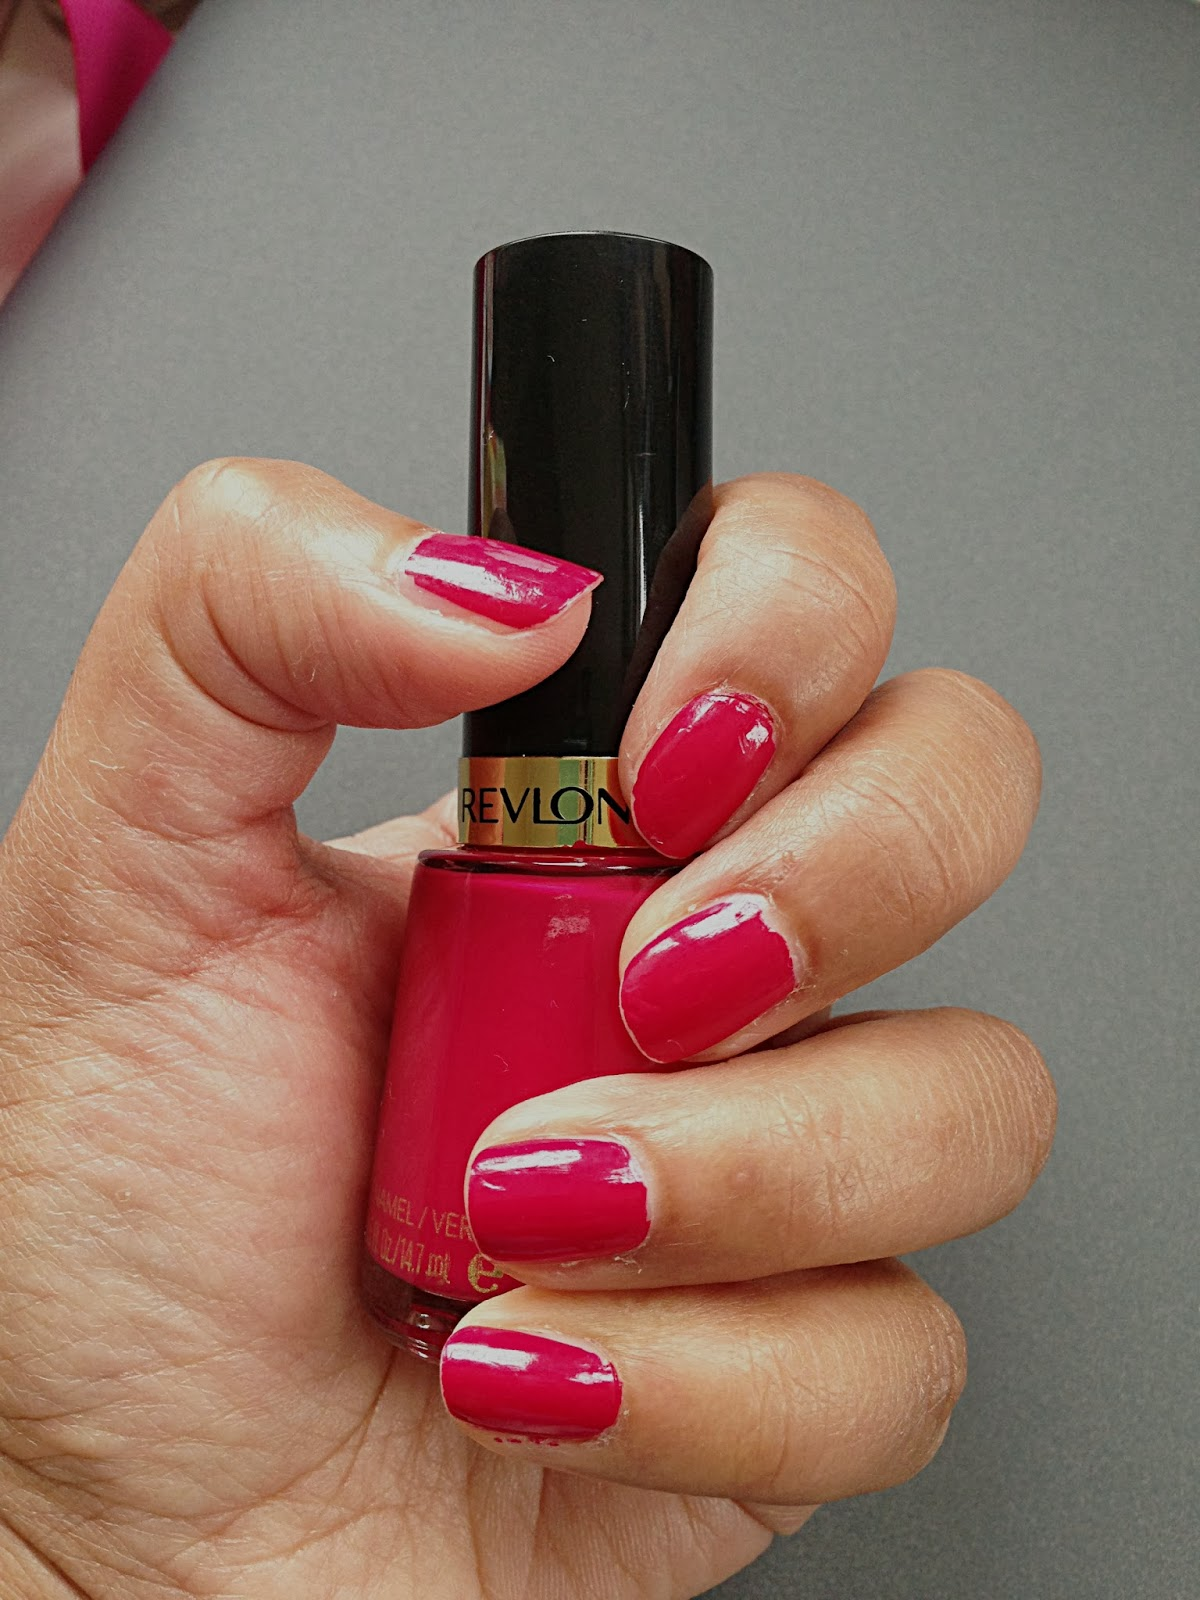 ... save this for my September favourites post but I just couldn't wait to talk about my love for Revlon's Cherries in the Snow lipstick and nail varnish!!